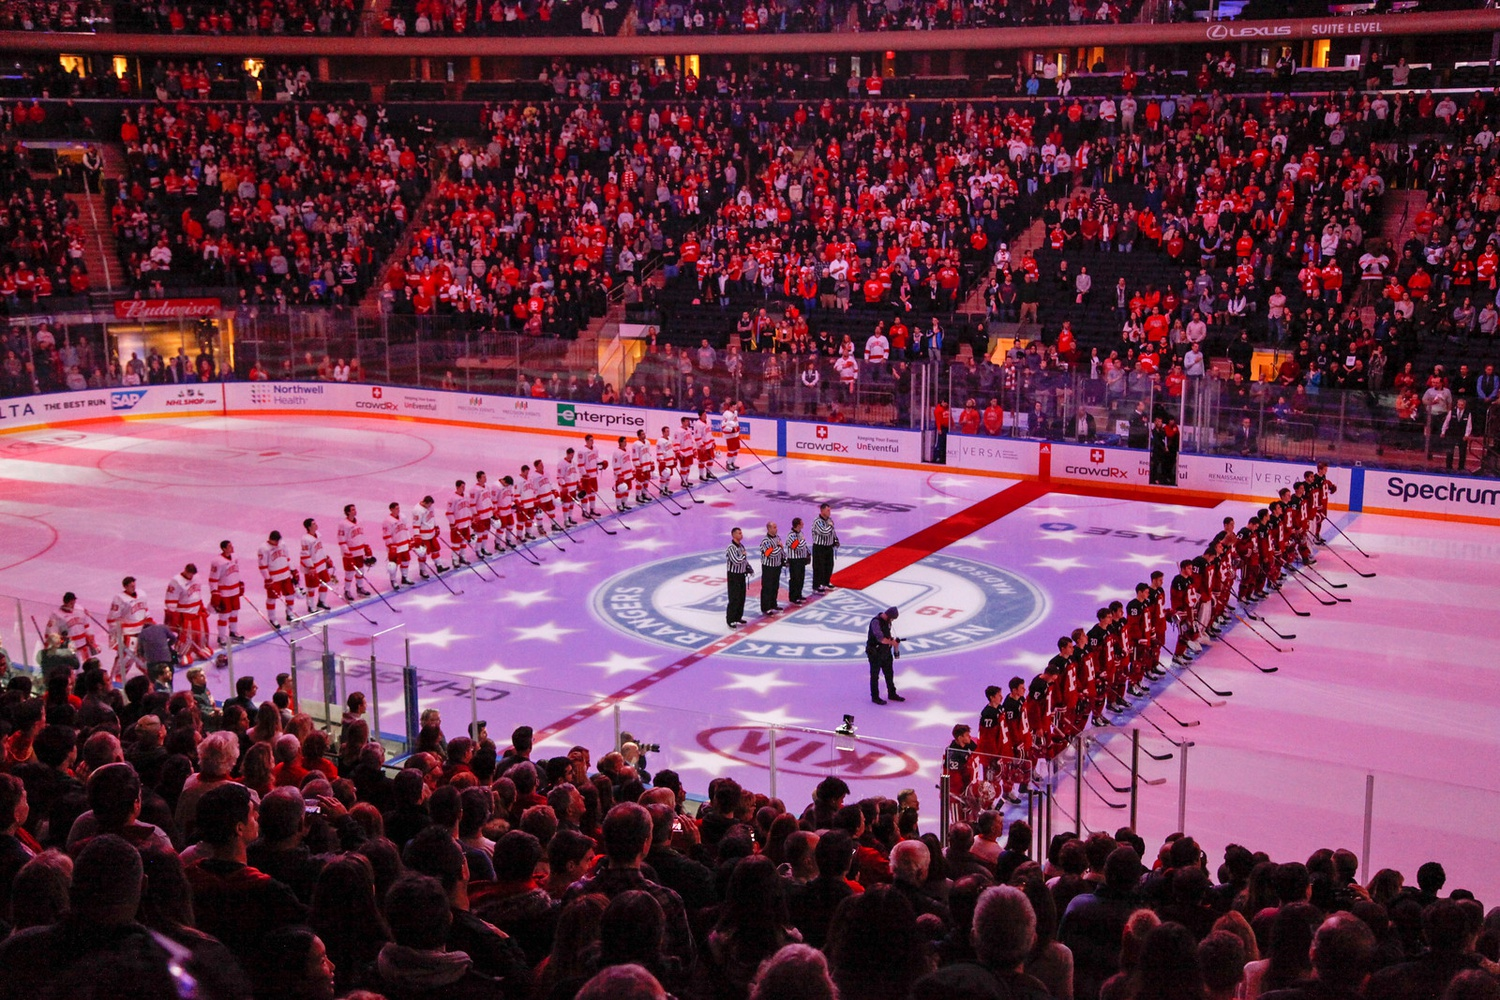 One of the many highlights on the Crimson's 2019-2020 schedule is a return to Madison Square Garden, where last year's team bested Cornell in a game that altered the complexion of Harvard's campaign.